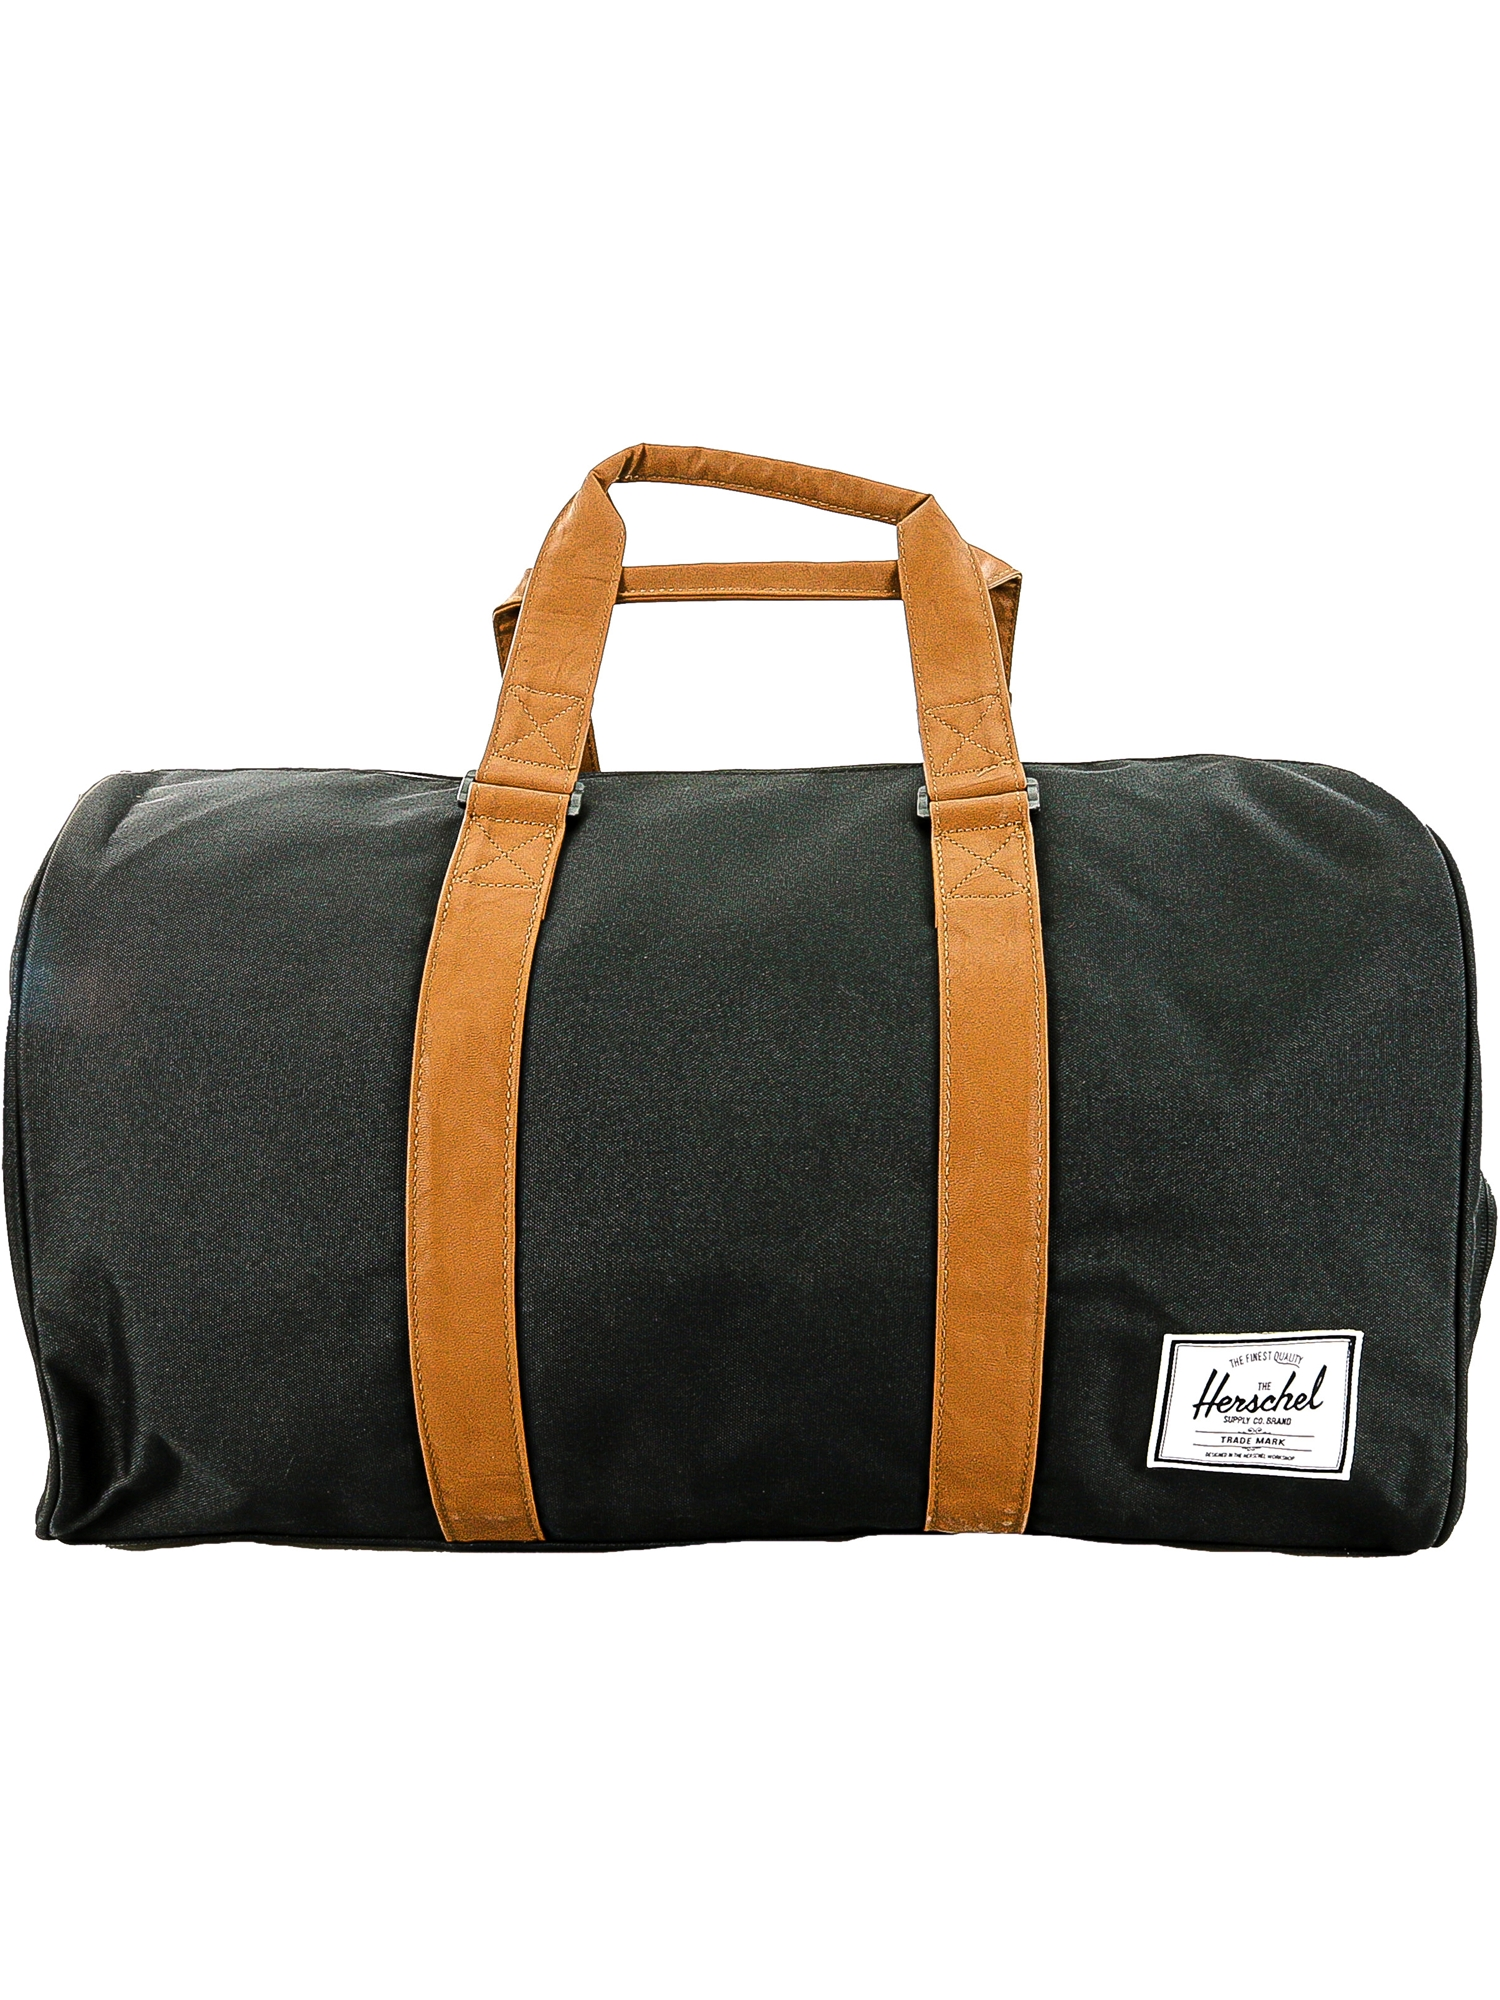 5079443be4ae Herschel Supply Co Novel Canvas Duffle Bag - Black - Walmart.com